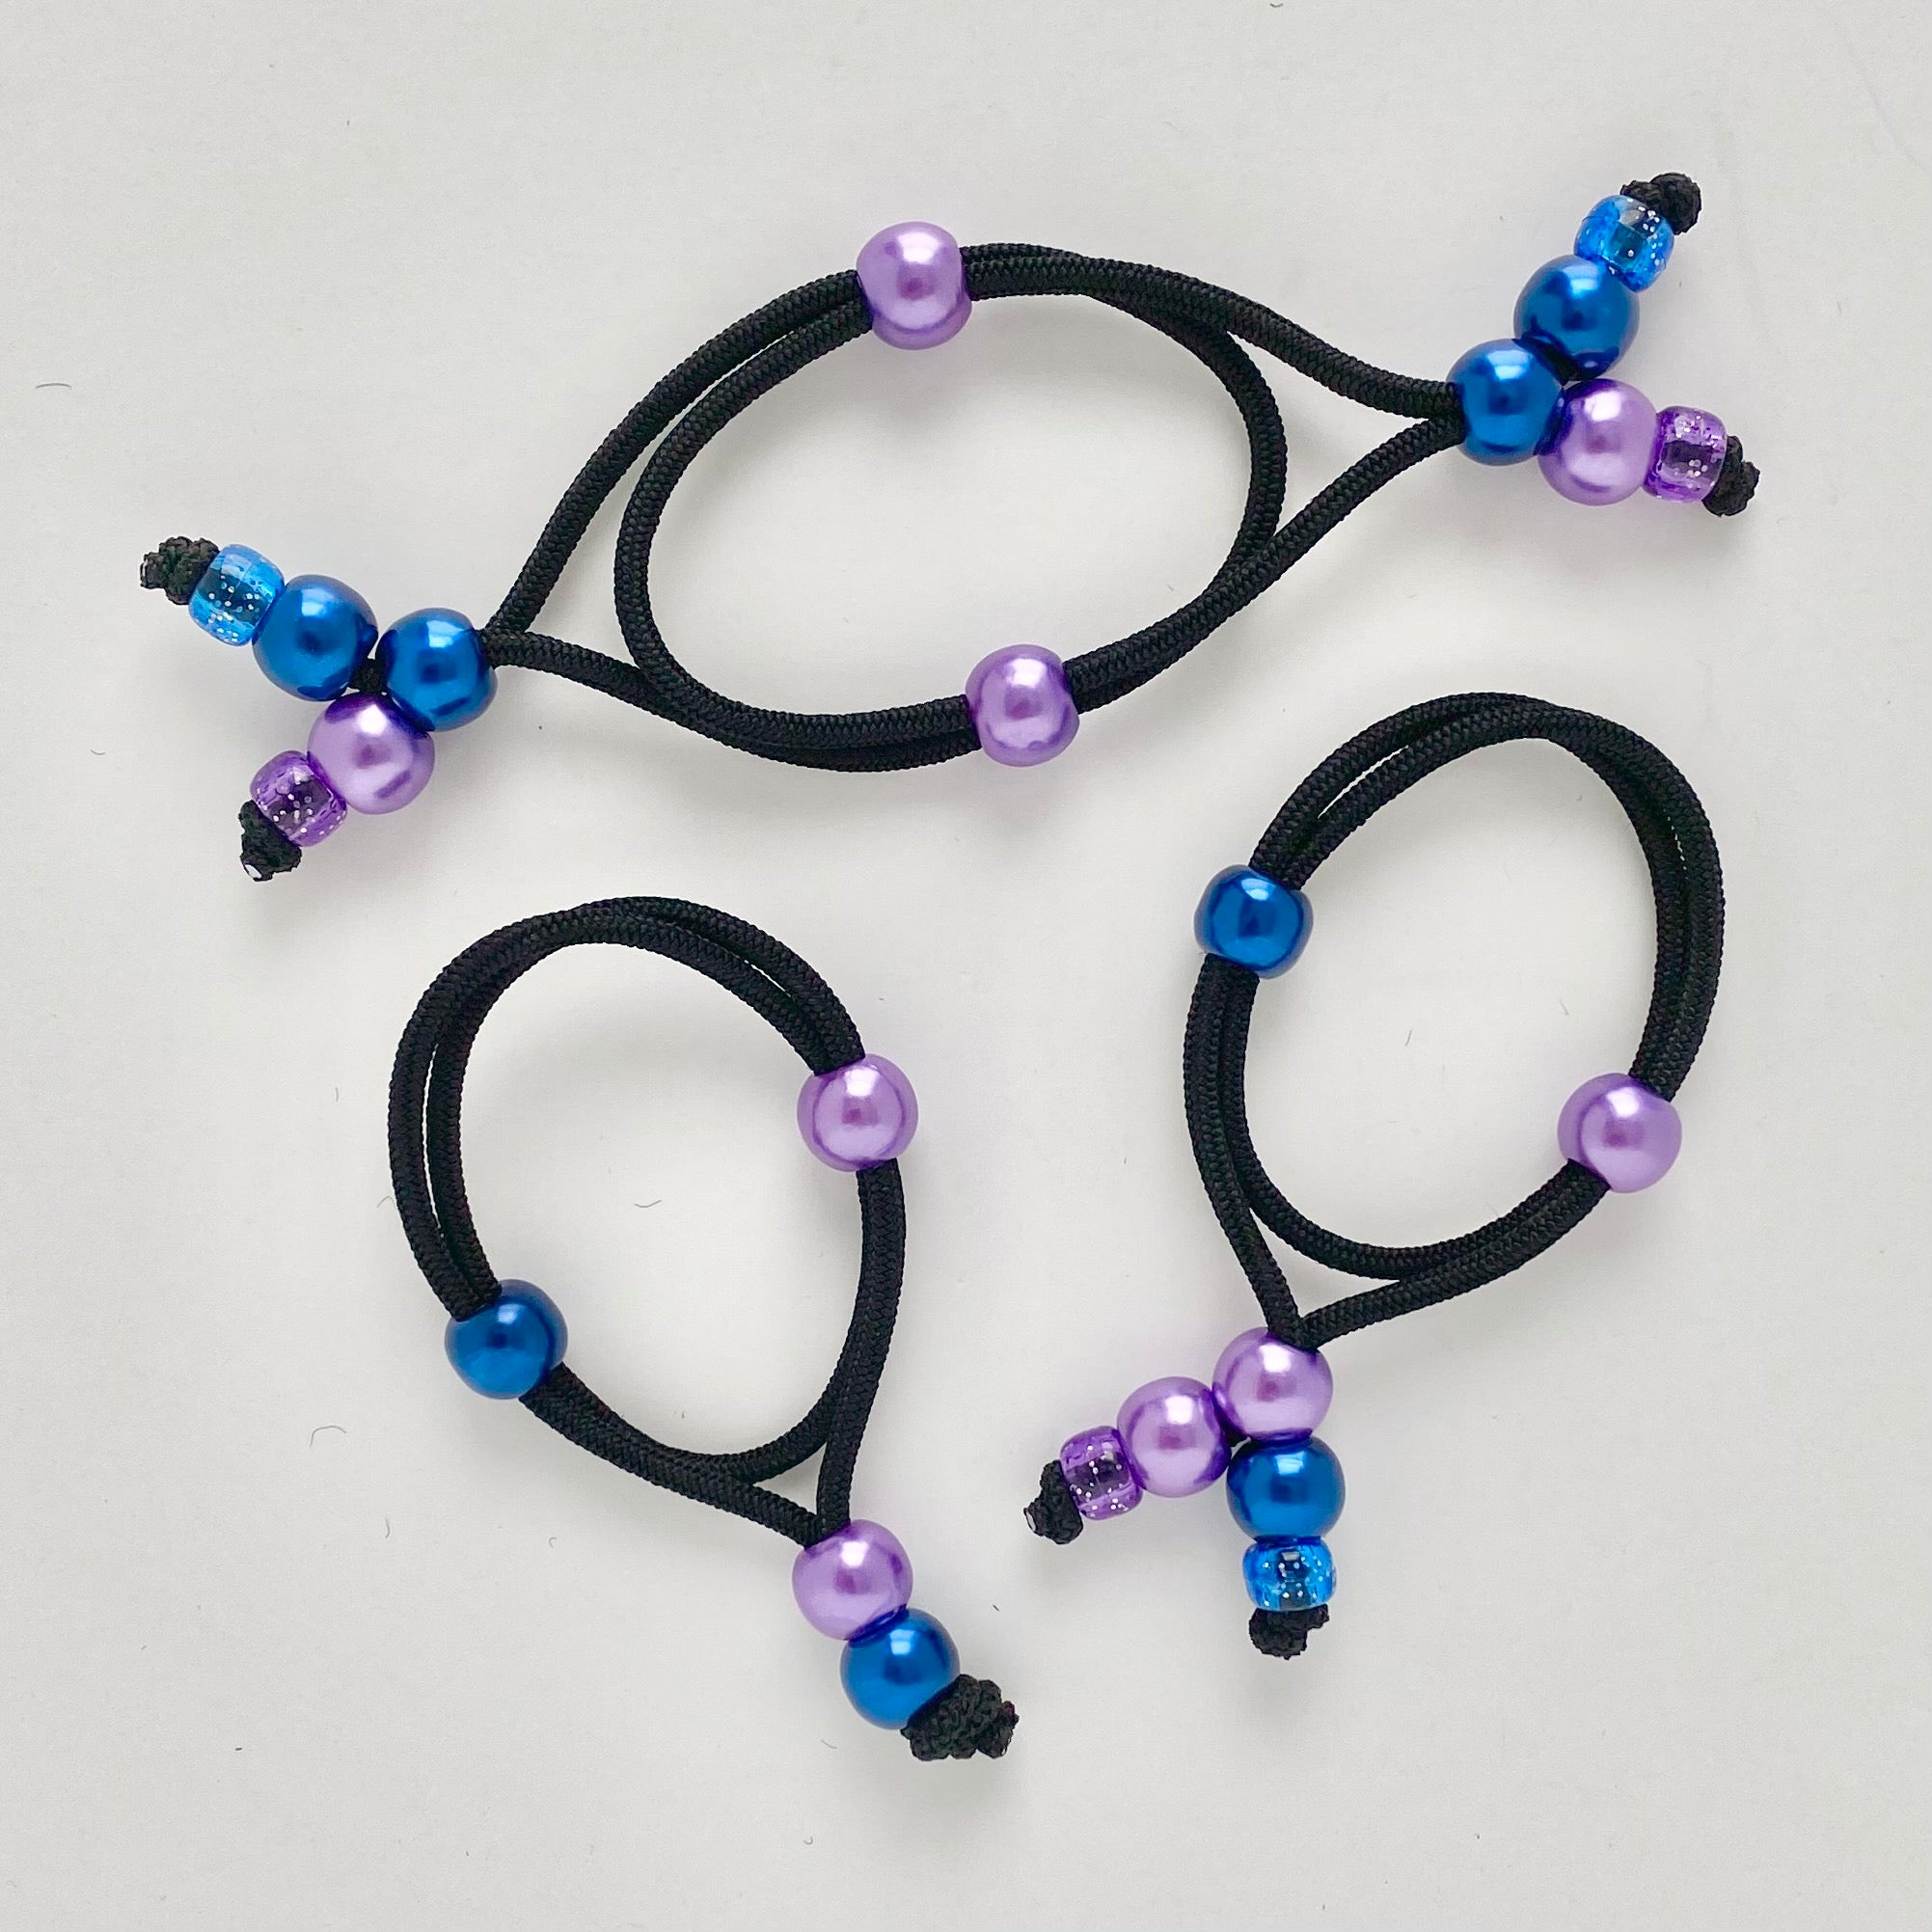 Our hair ties make perfect ponytails and hair buns quickly and easily.  Our hair ties are comfortable and they create a secure hold for all hair types.  Our hair ties won't stretch out, break or damage your hair.